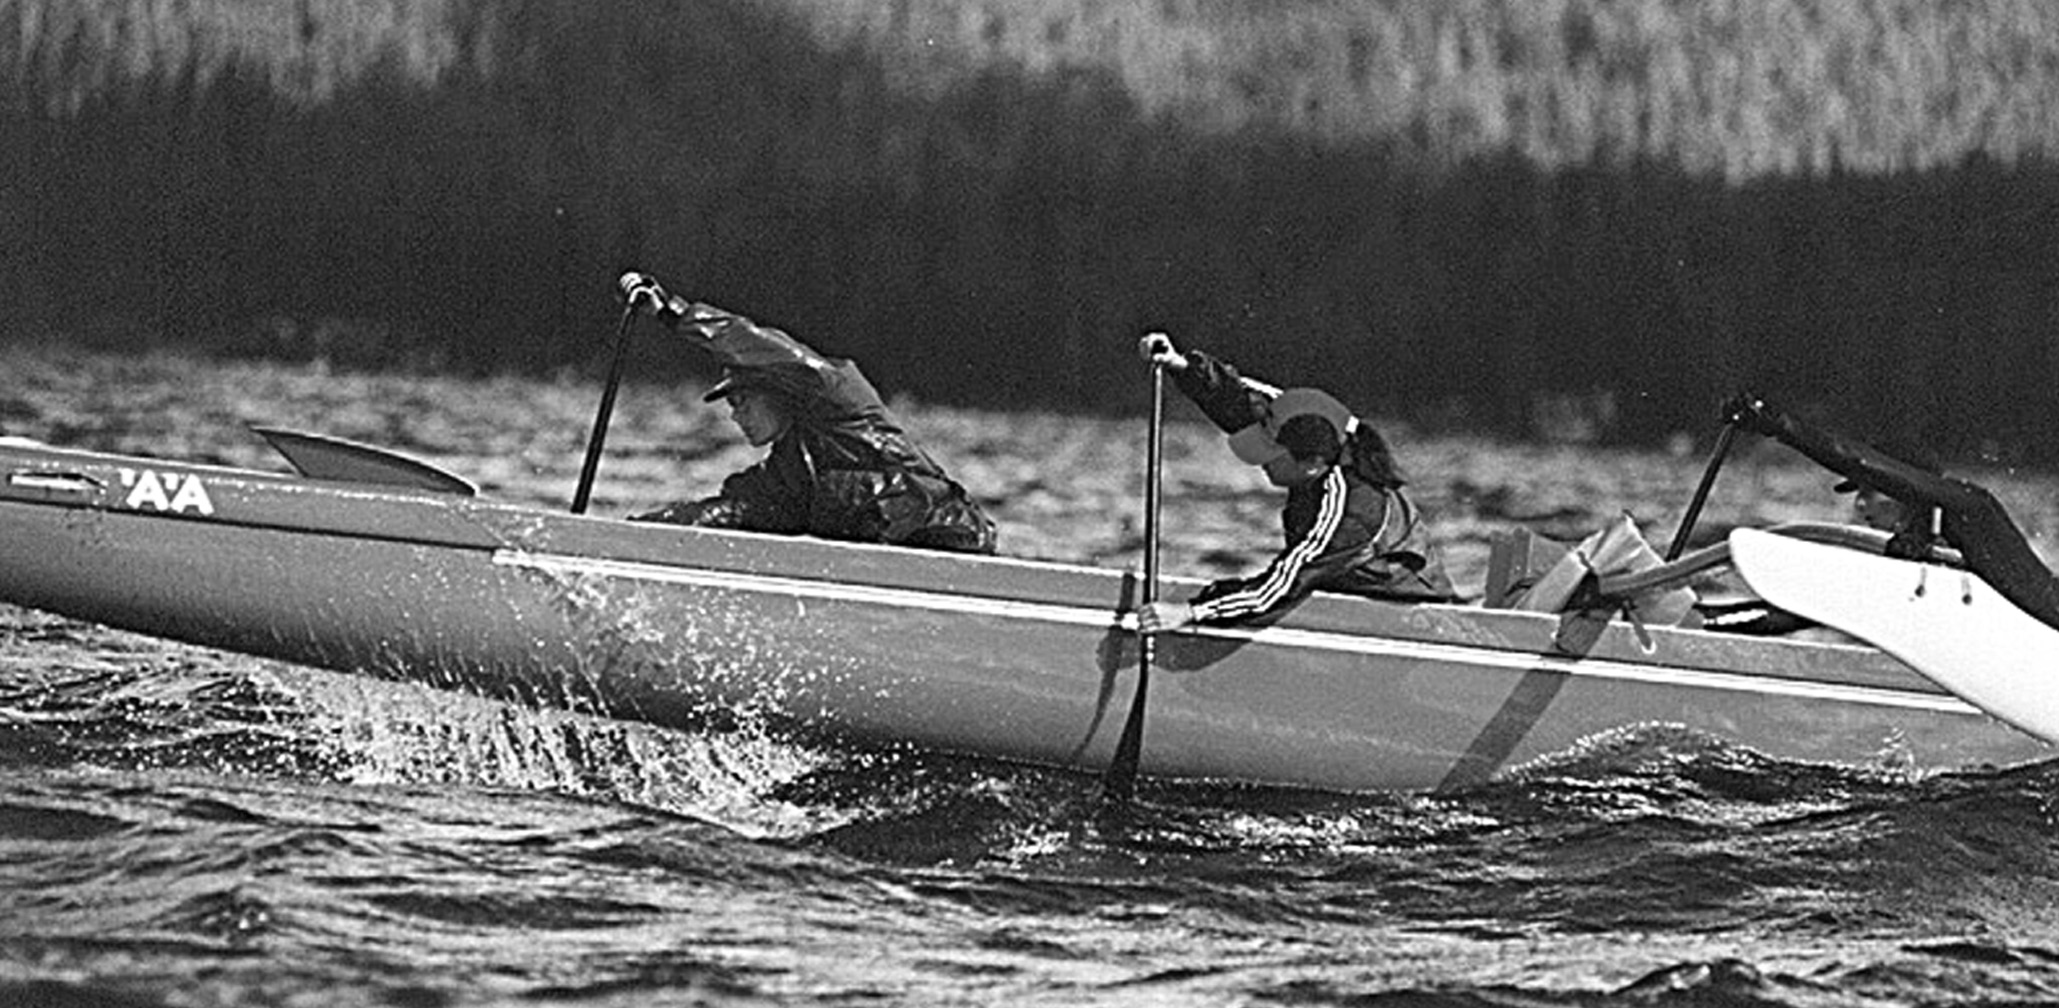 Racing on Lake Tahoe California - All carbon paddles, before 'hybrids' existed.